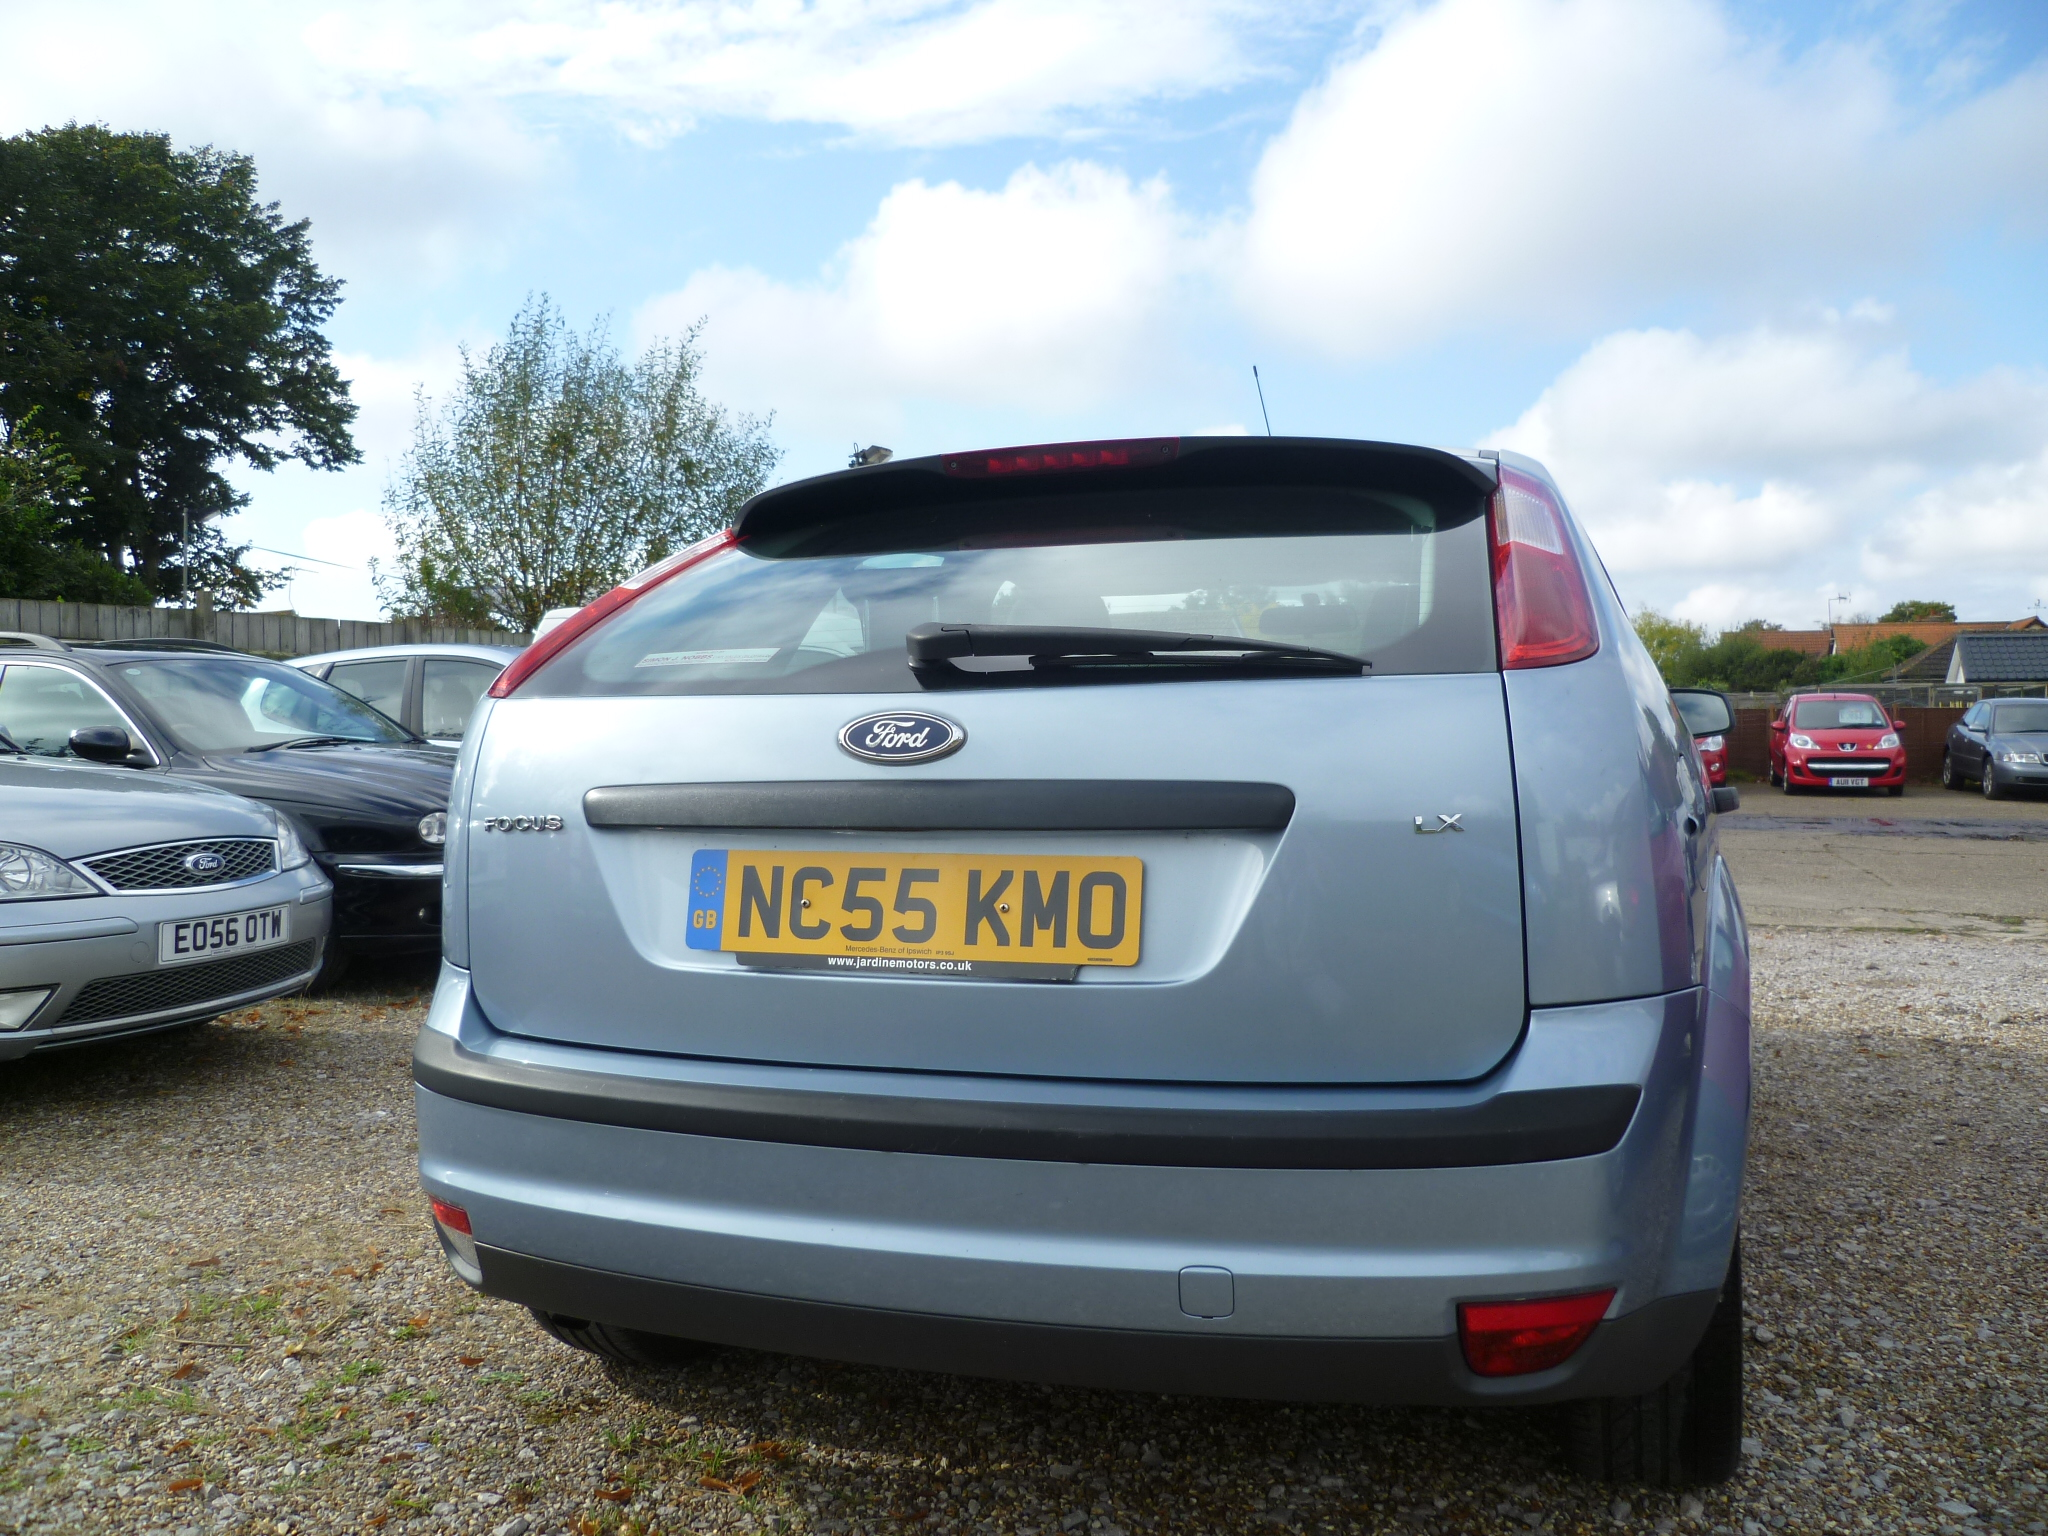 Ford Focus 1.6 LX Automatic 008